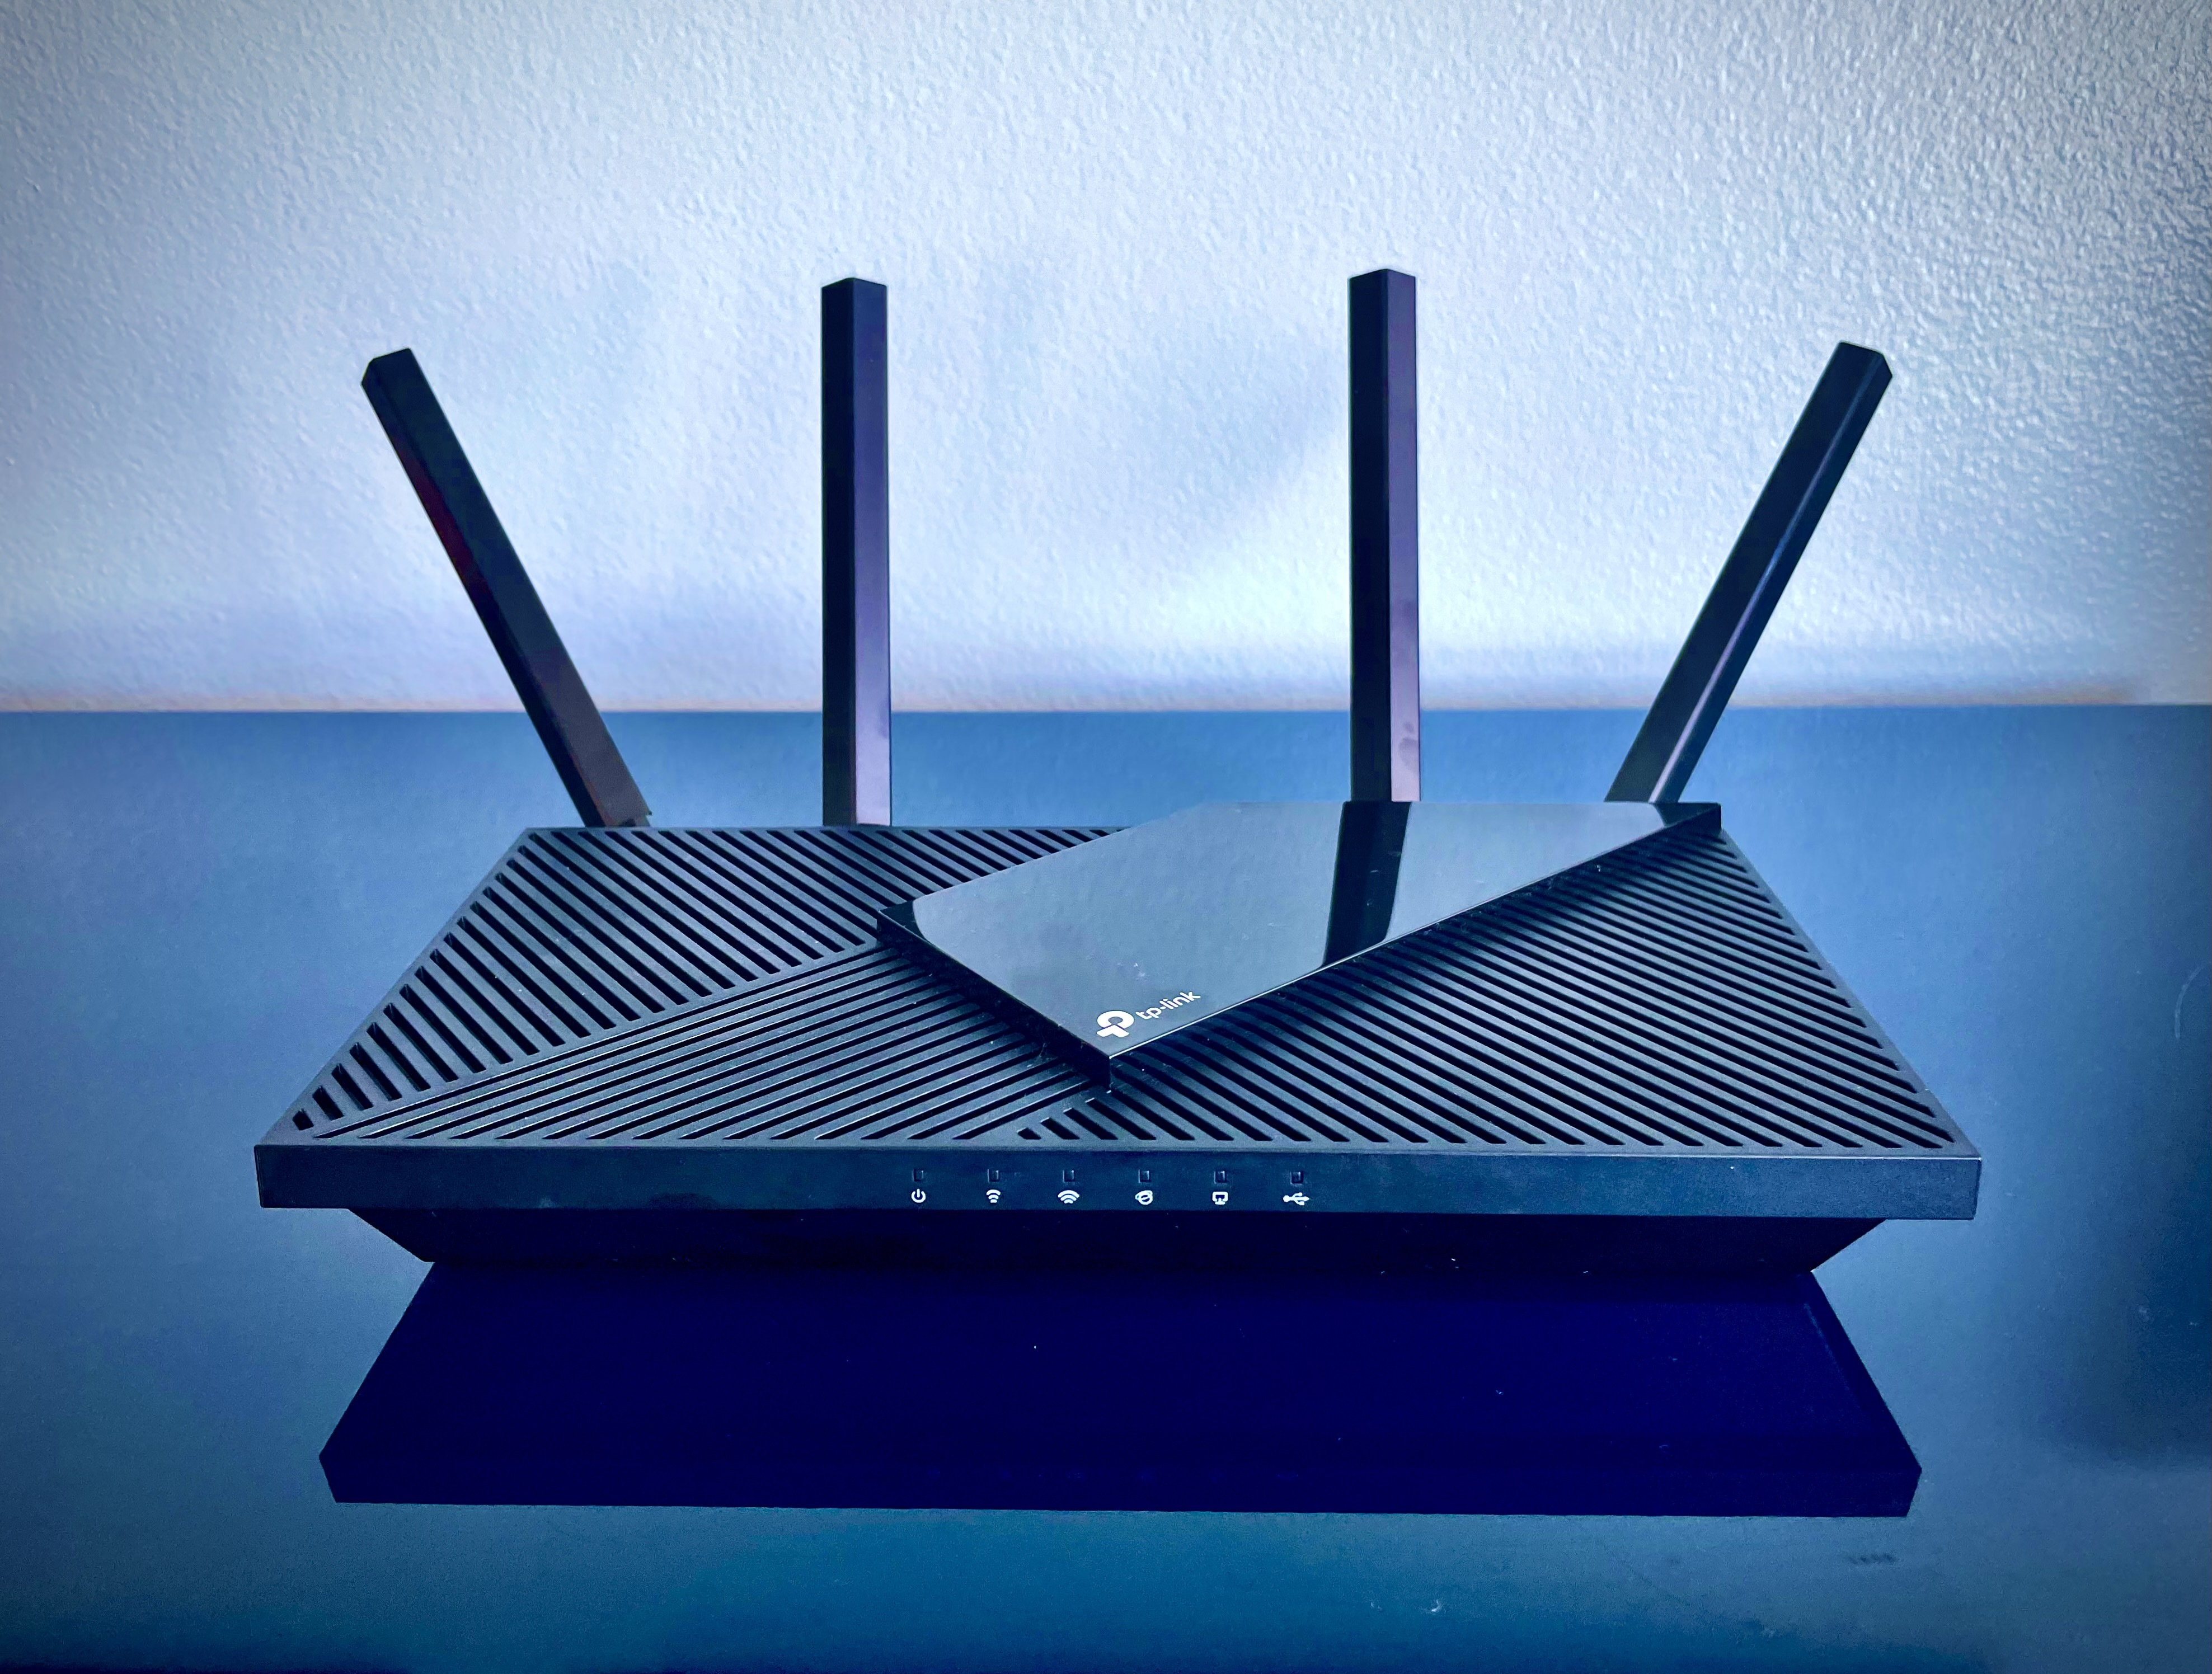 tp-link-archer-ax21-ax1800-wi-fi-6-router-blue-promo